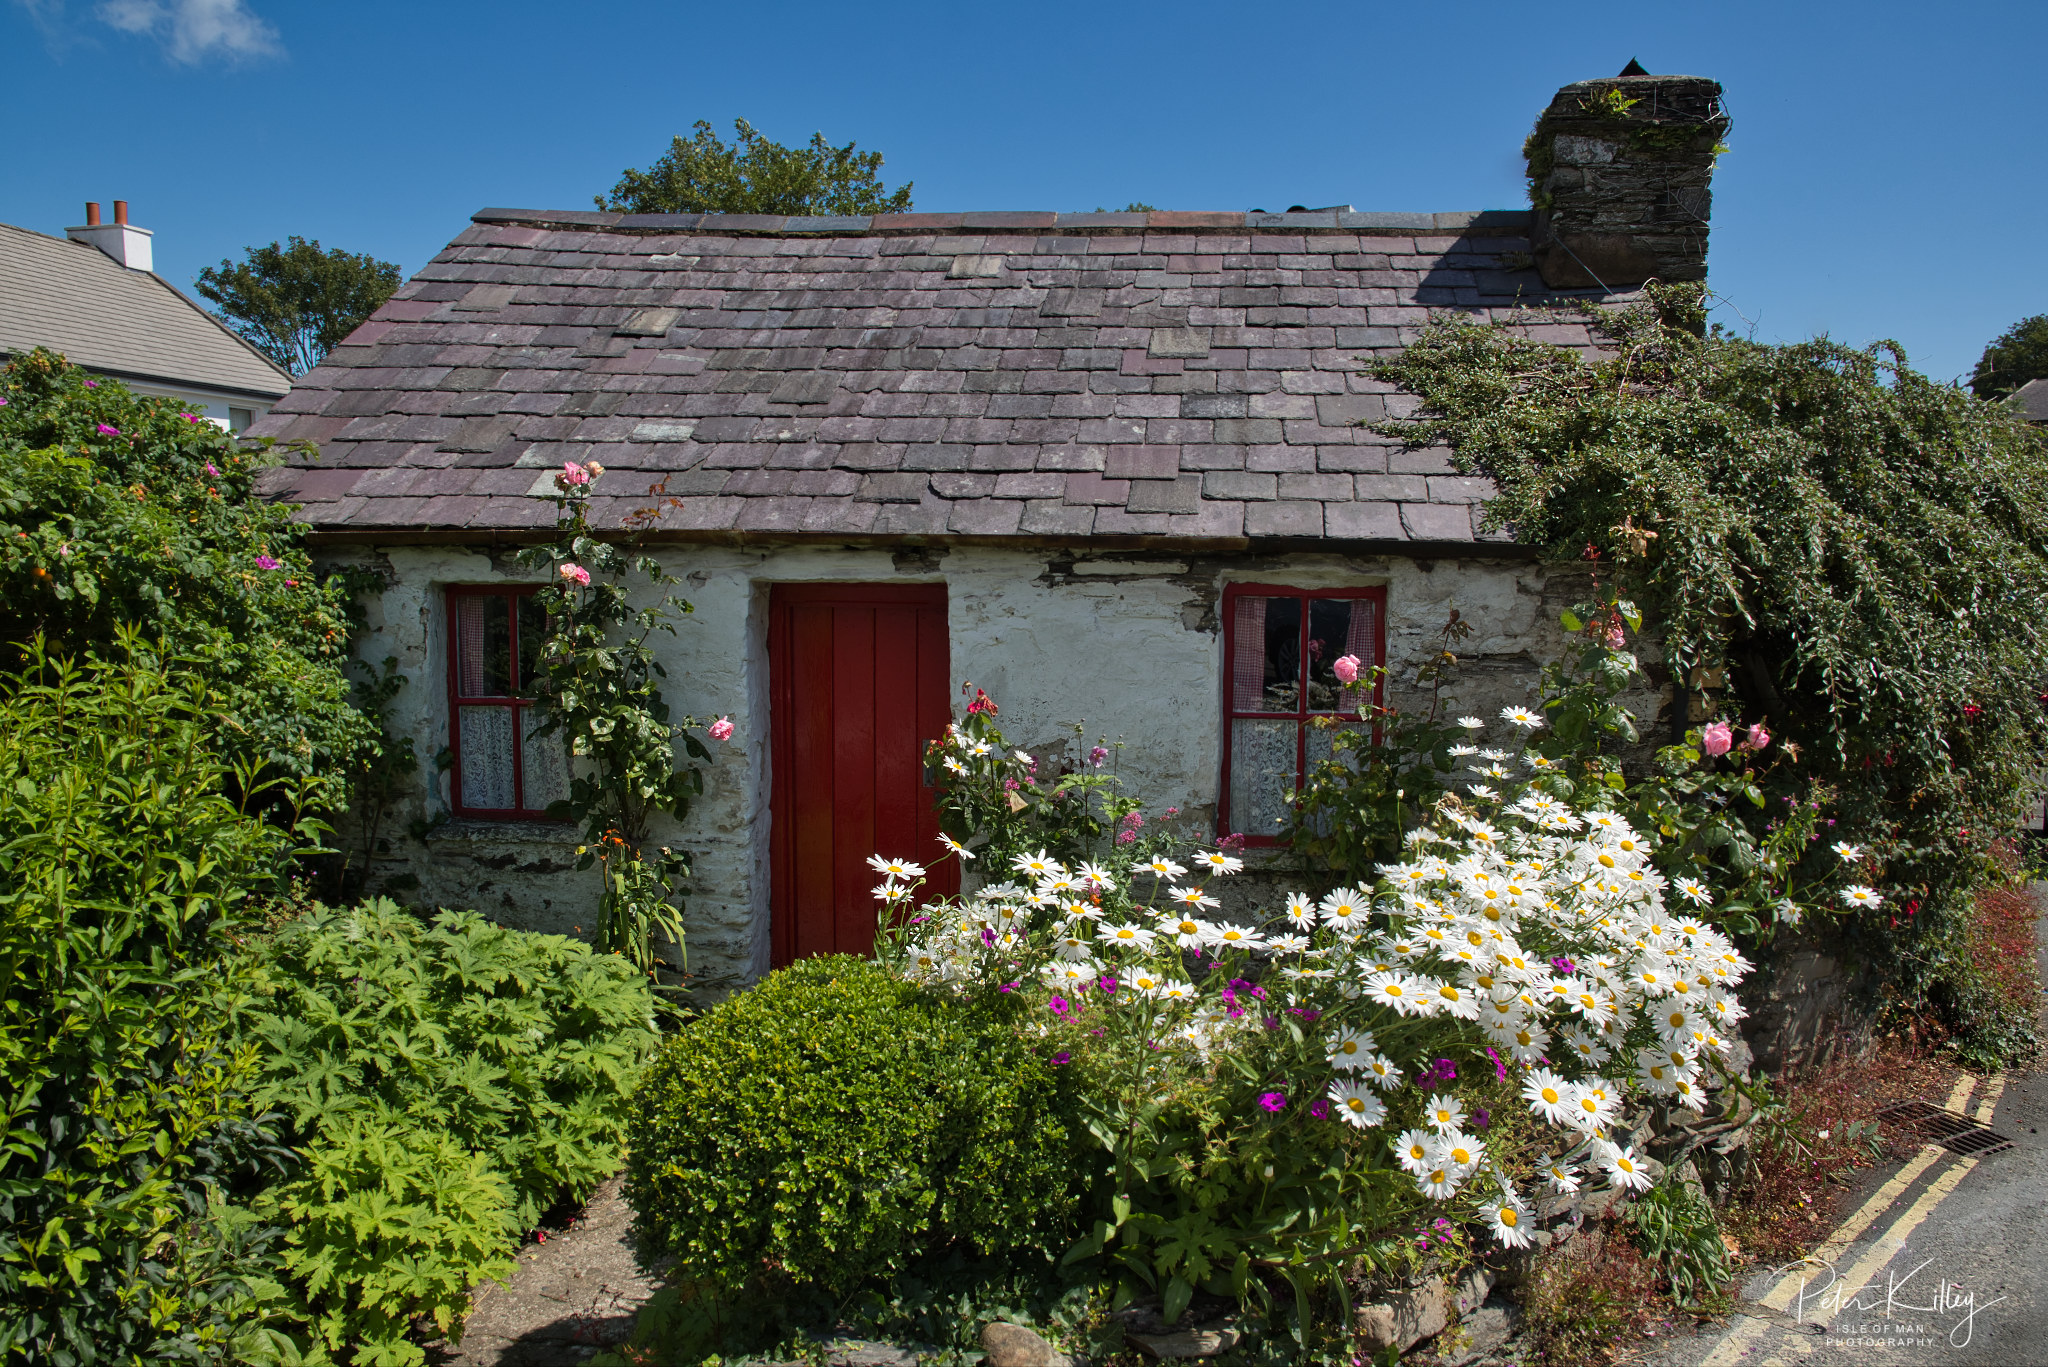 Molly Carrooins Cottage - © Peter Killey - www.manxscenes.com